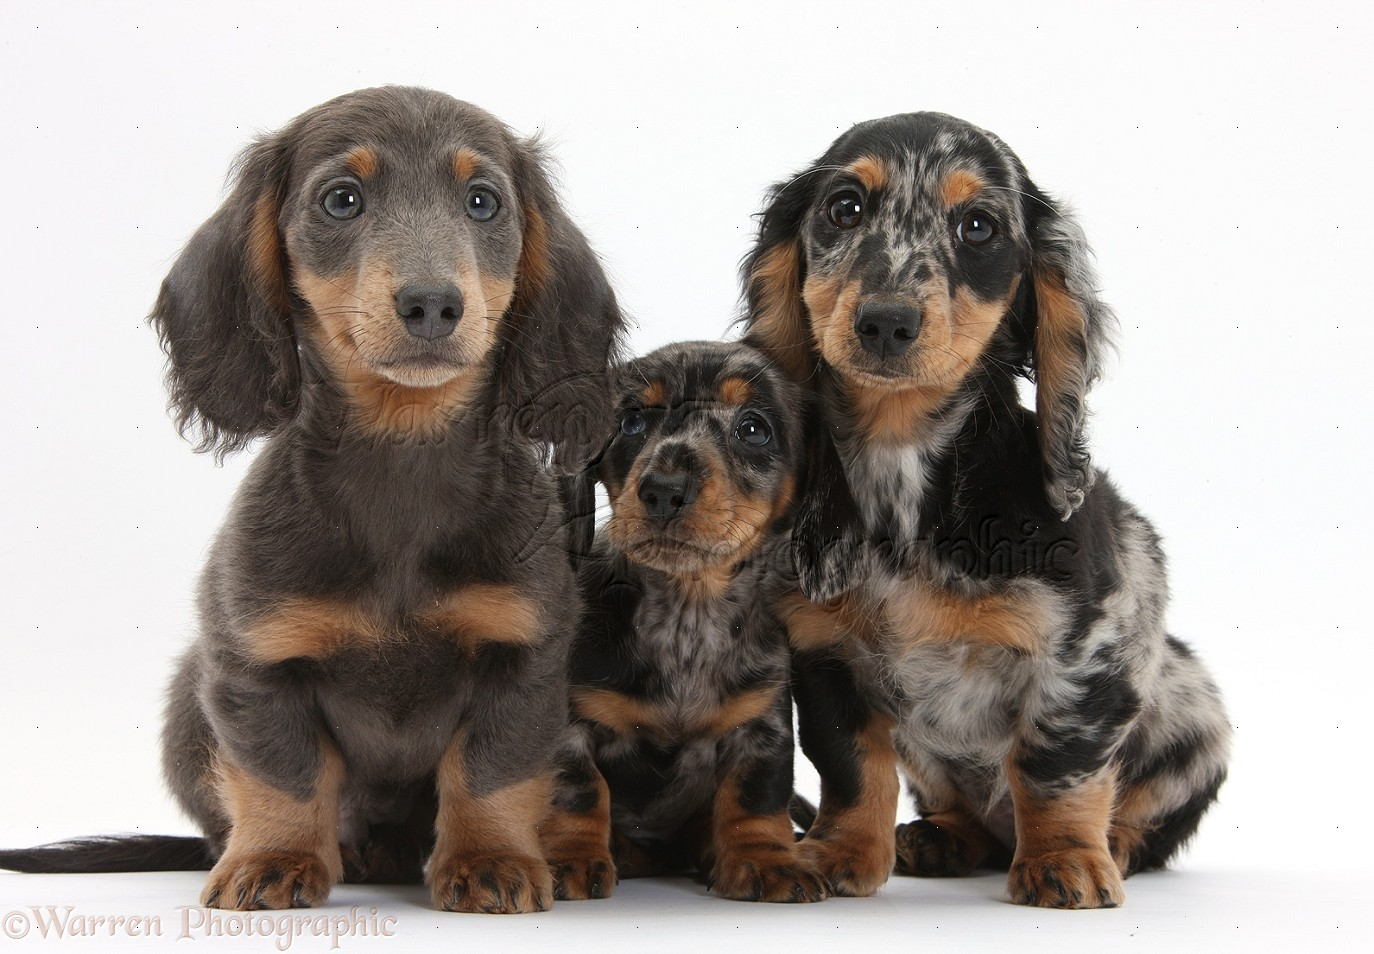 Dogs Blue And Tan And Tricolour Merle Dachshund Pups Photo Wp33825